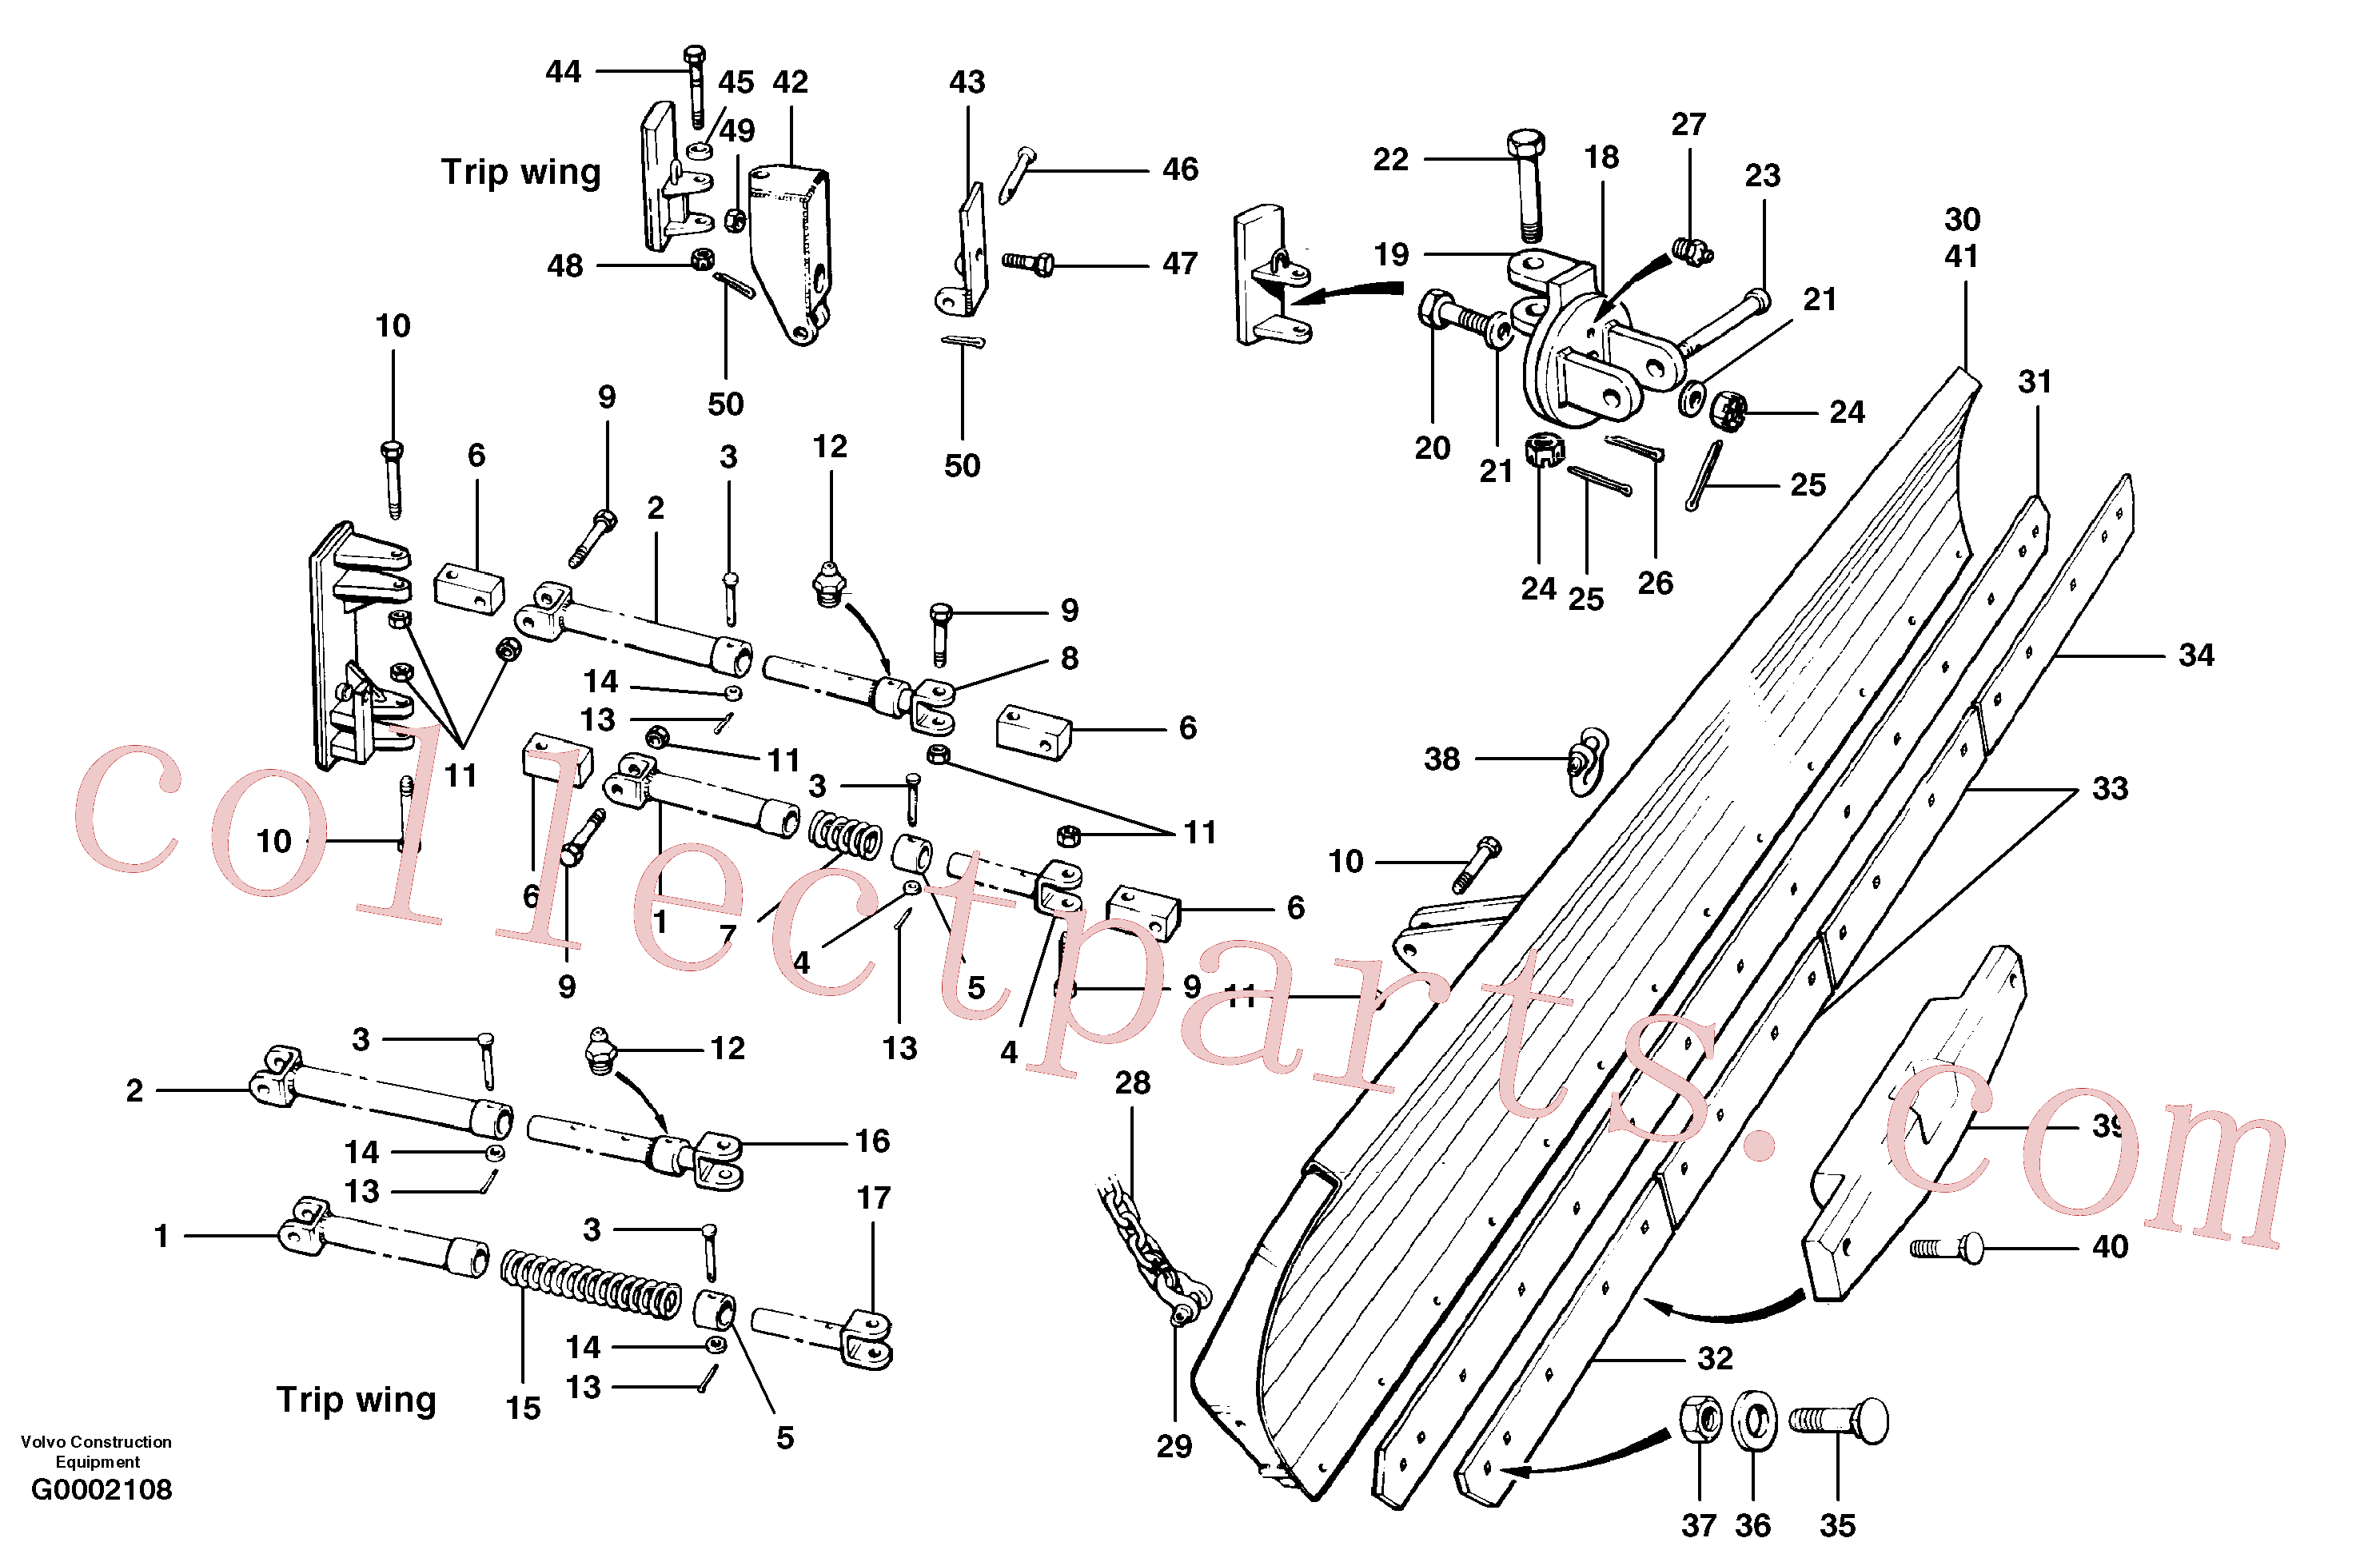 CH22129 for Volvo Wing installation - cable wing(G0002108 assembly)